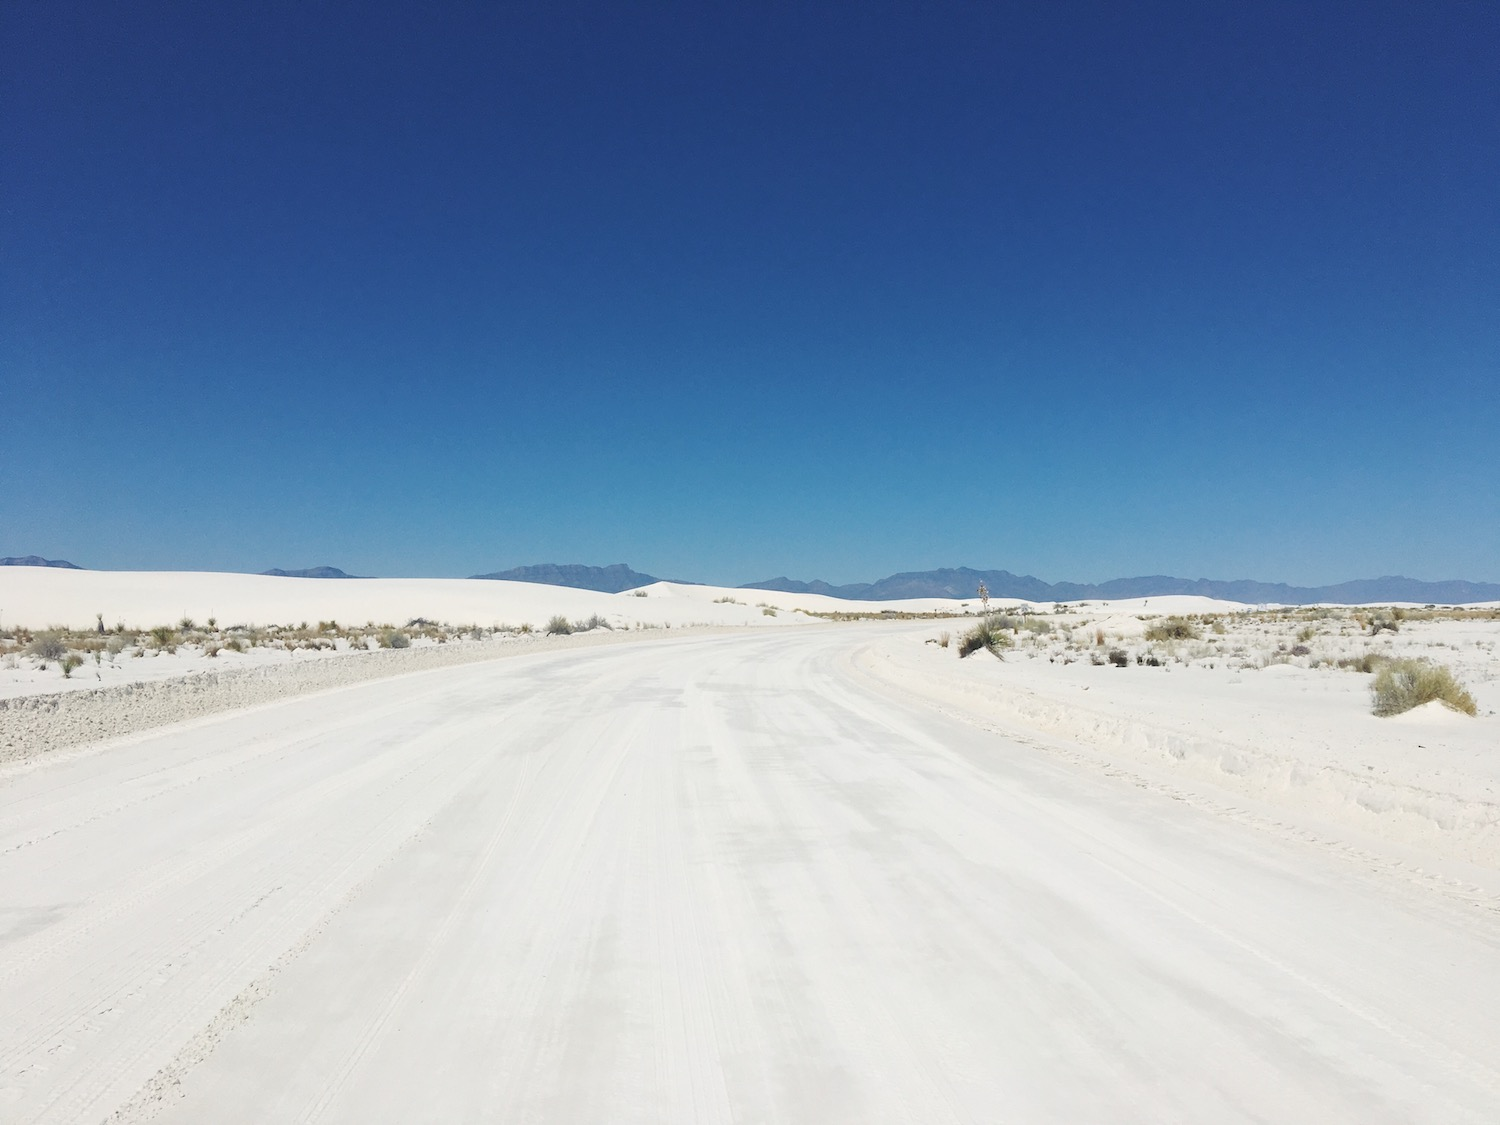 White Sands deserto di sabbia bianca - New Mexico - in auto